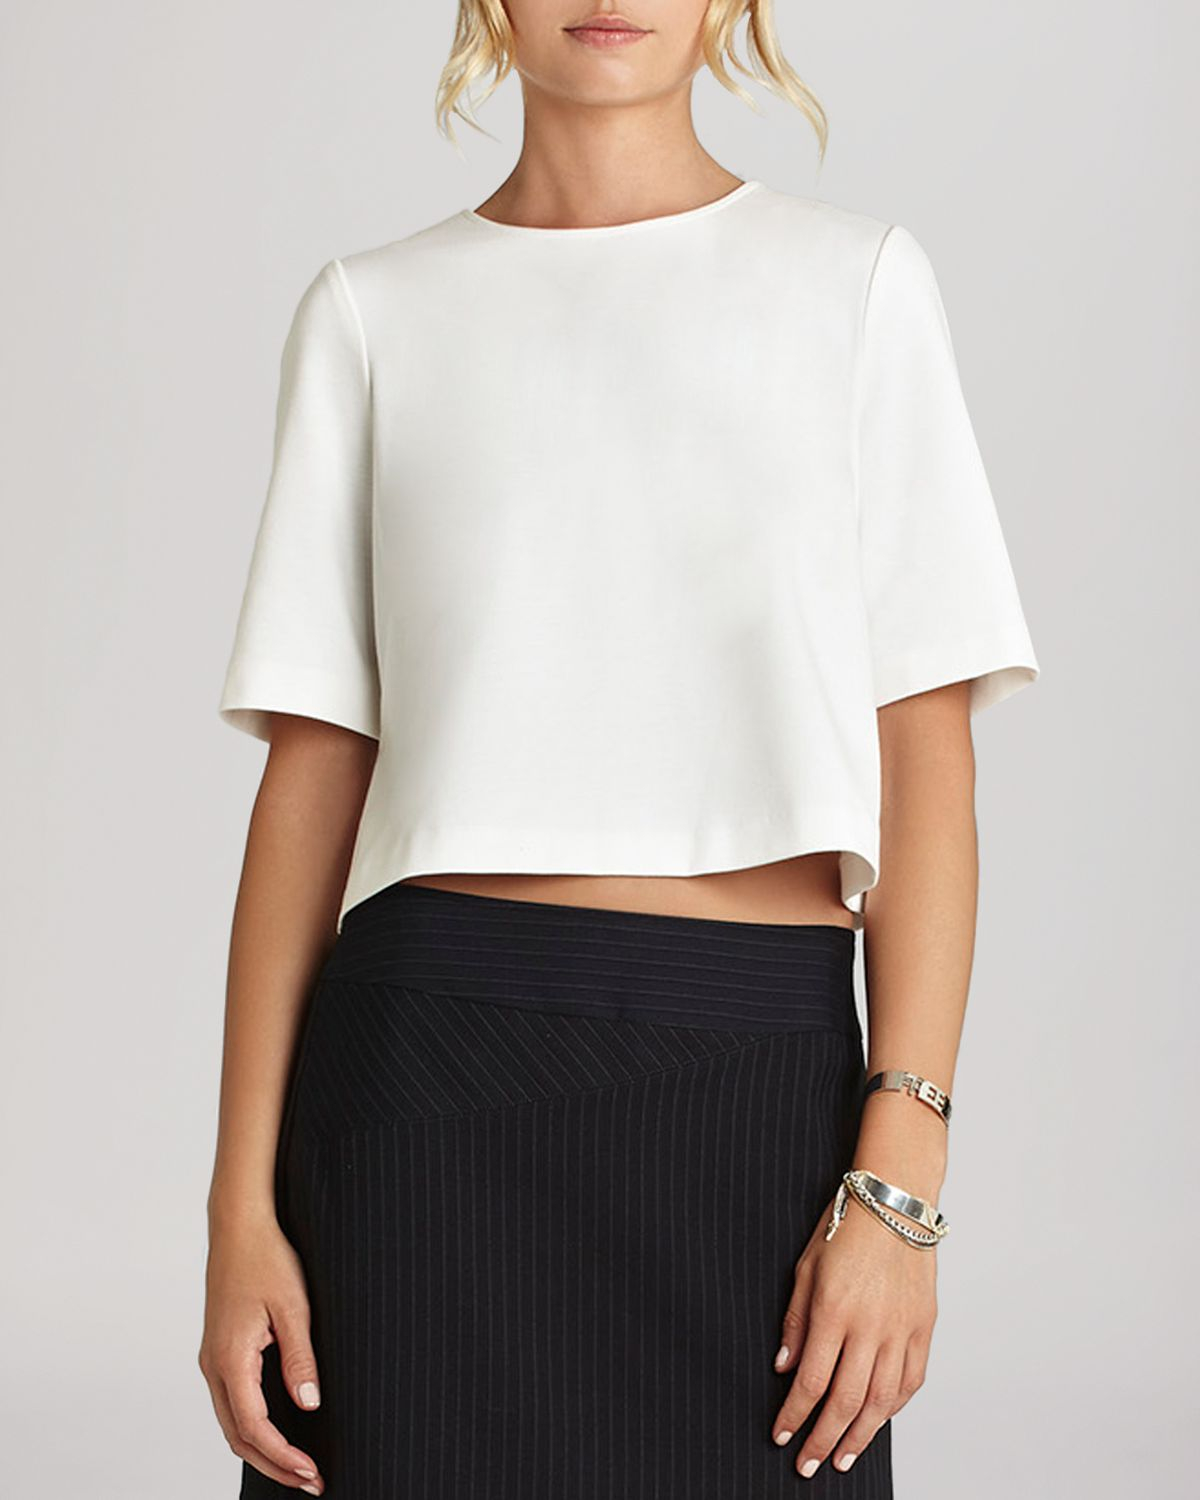 Bcbgeneration Boxy Crop Top In White